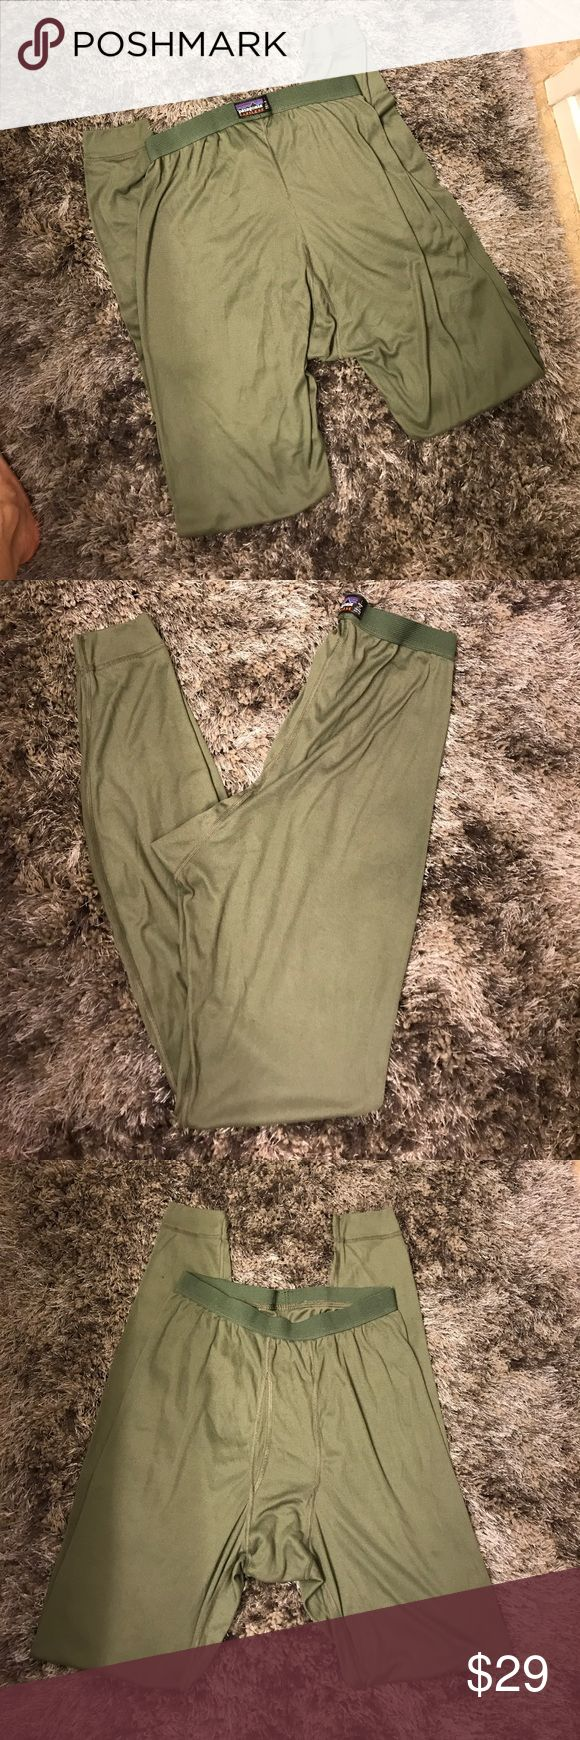 Men's Patagonia tights Great condition men's Patagonia tights size L Patagonia Pants